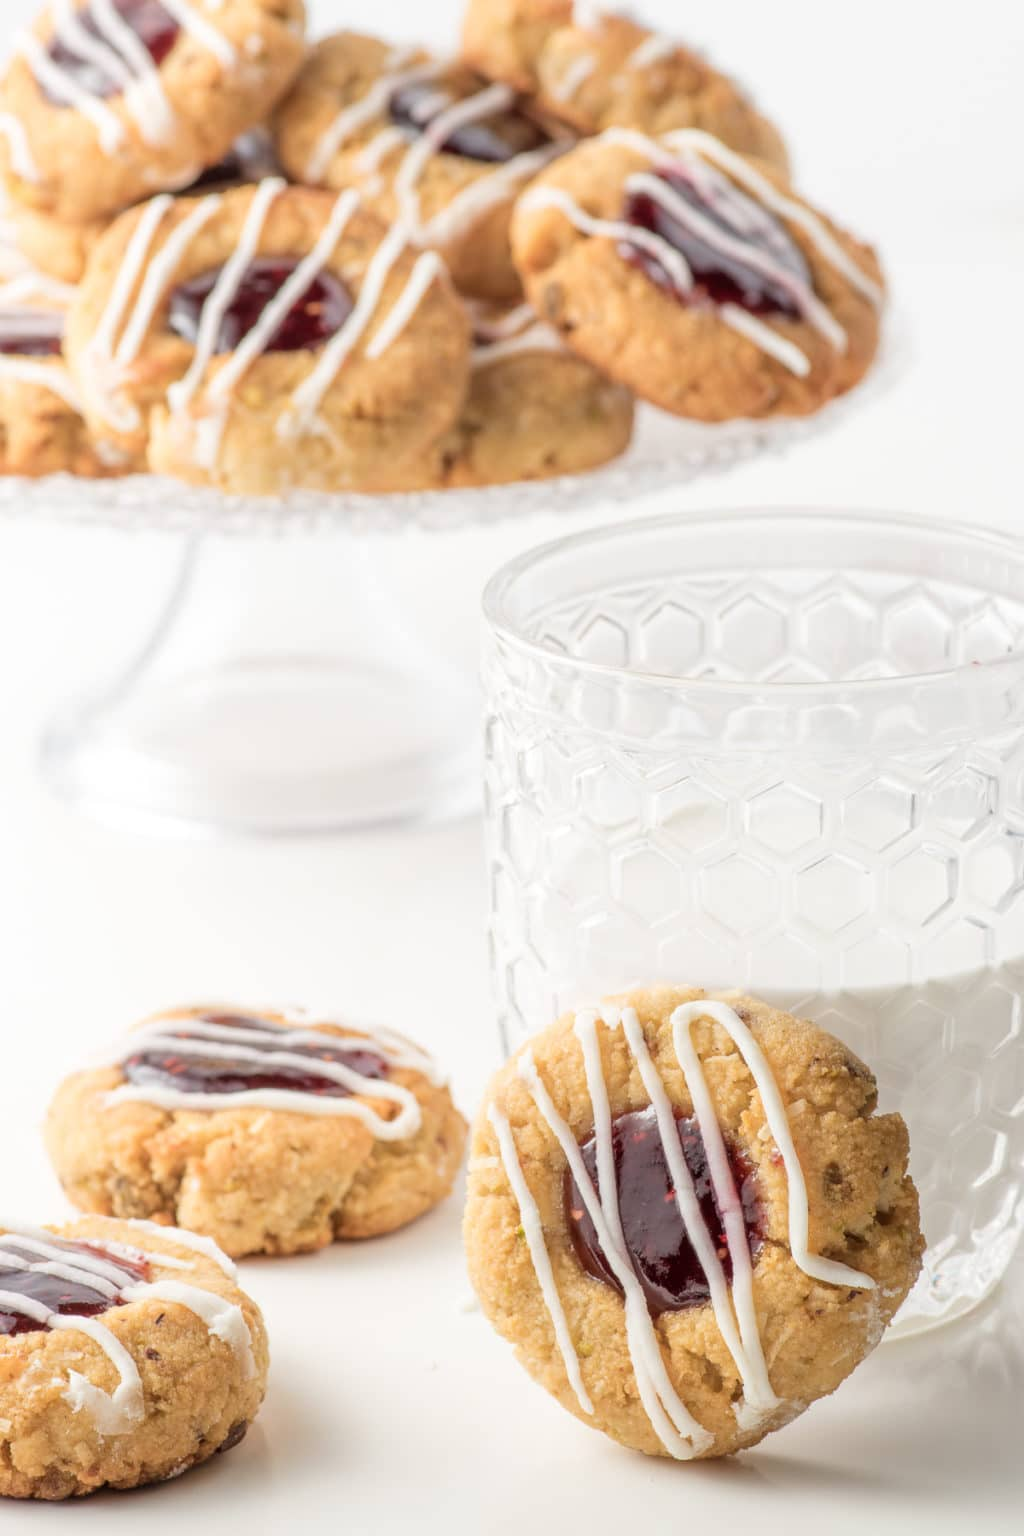 Set on a white backdrop are three, almond flour thumbprint cookies in the foreground, with one propped against a glass half filled with milk. The background contains a blurred, pedestal cake plate piled with raspberry jam-filled, almond flour, thumbprint cookies with pistachios.  All cookies are drizzled with white icing.